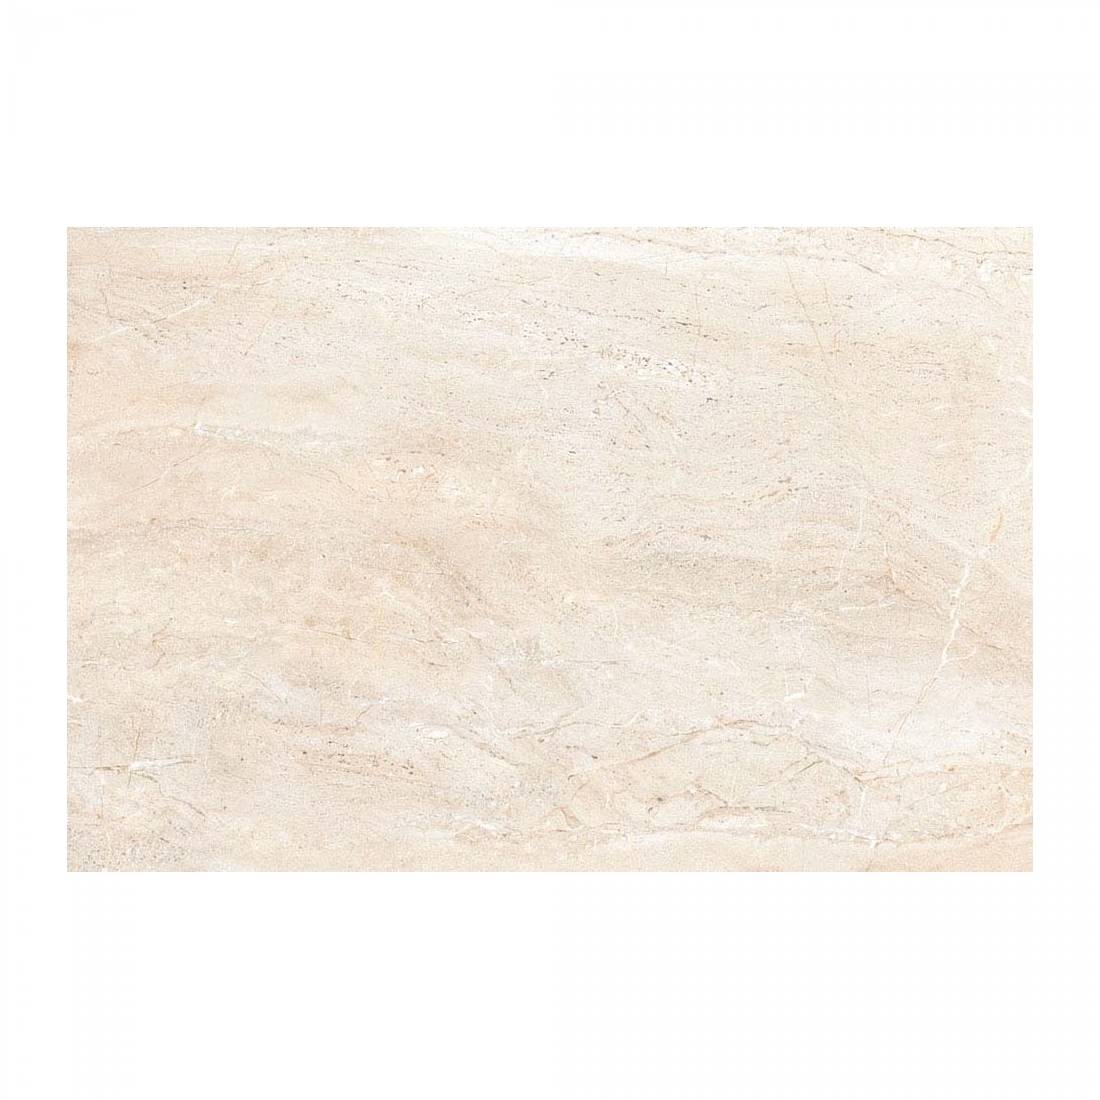 Montana 30x45 Light Beige Gloss 1